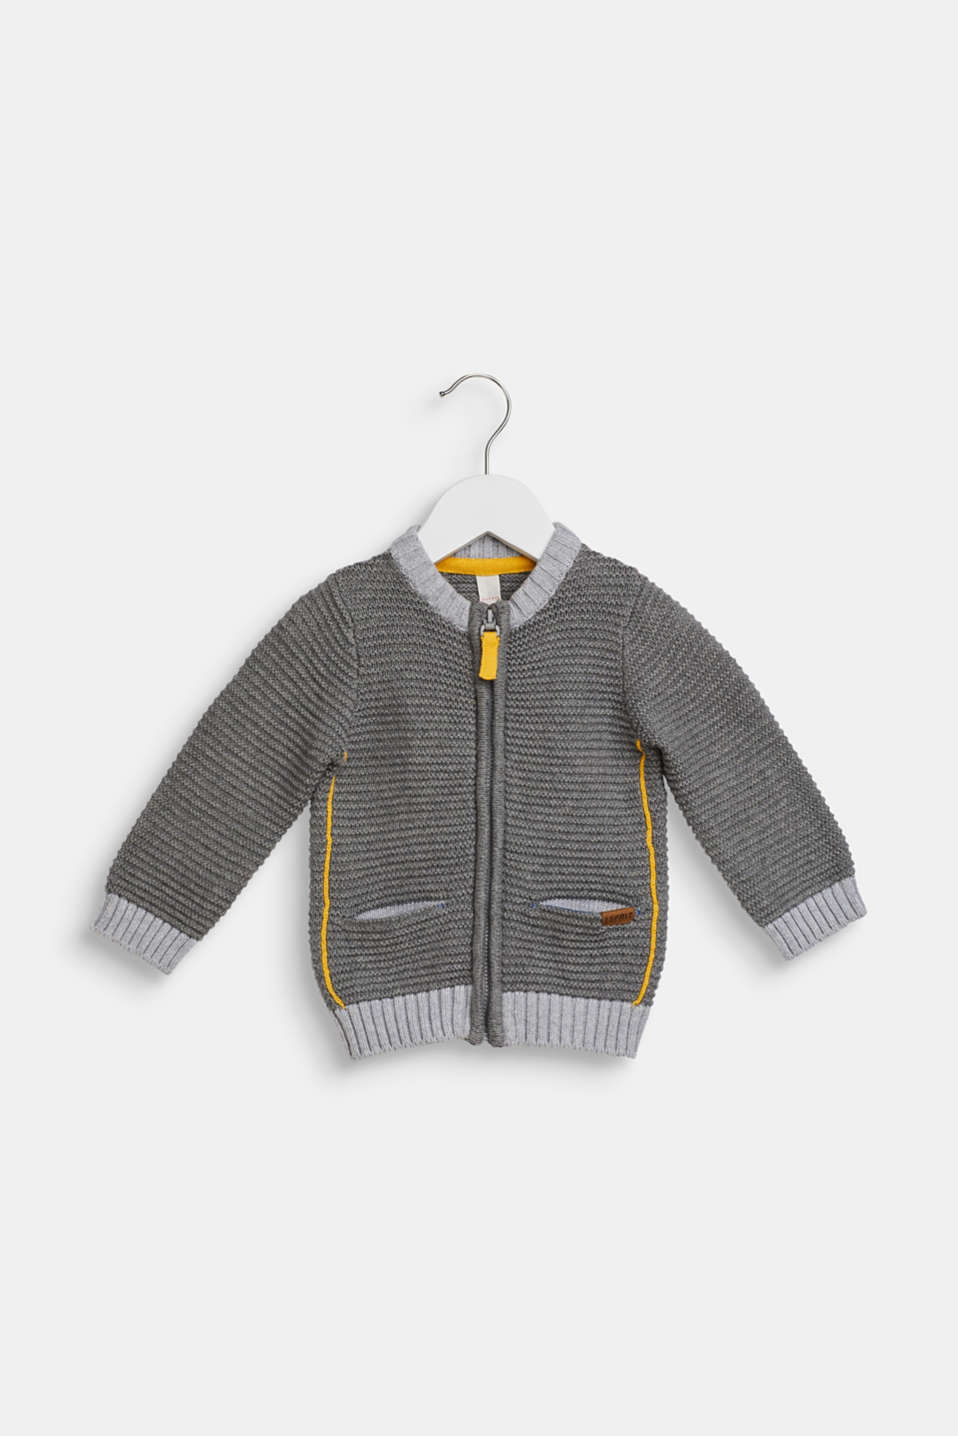 Rib knit cardigan made of 100% cotton, LCDARK HEATHER G, detail image number 0